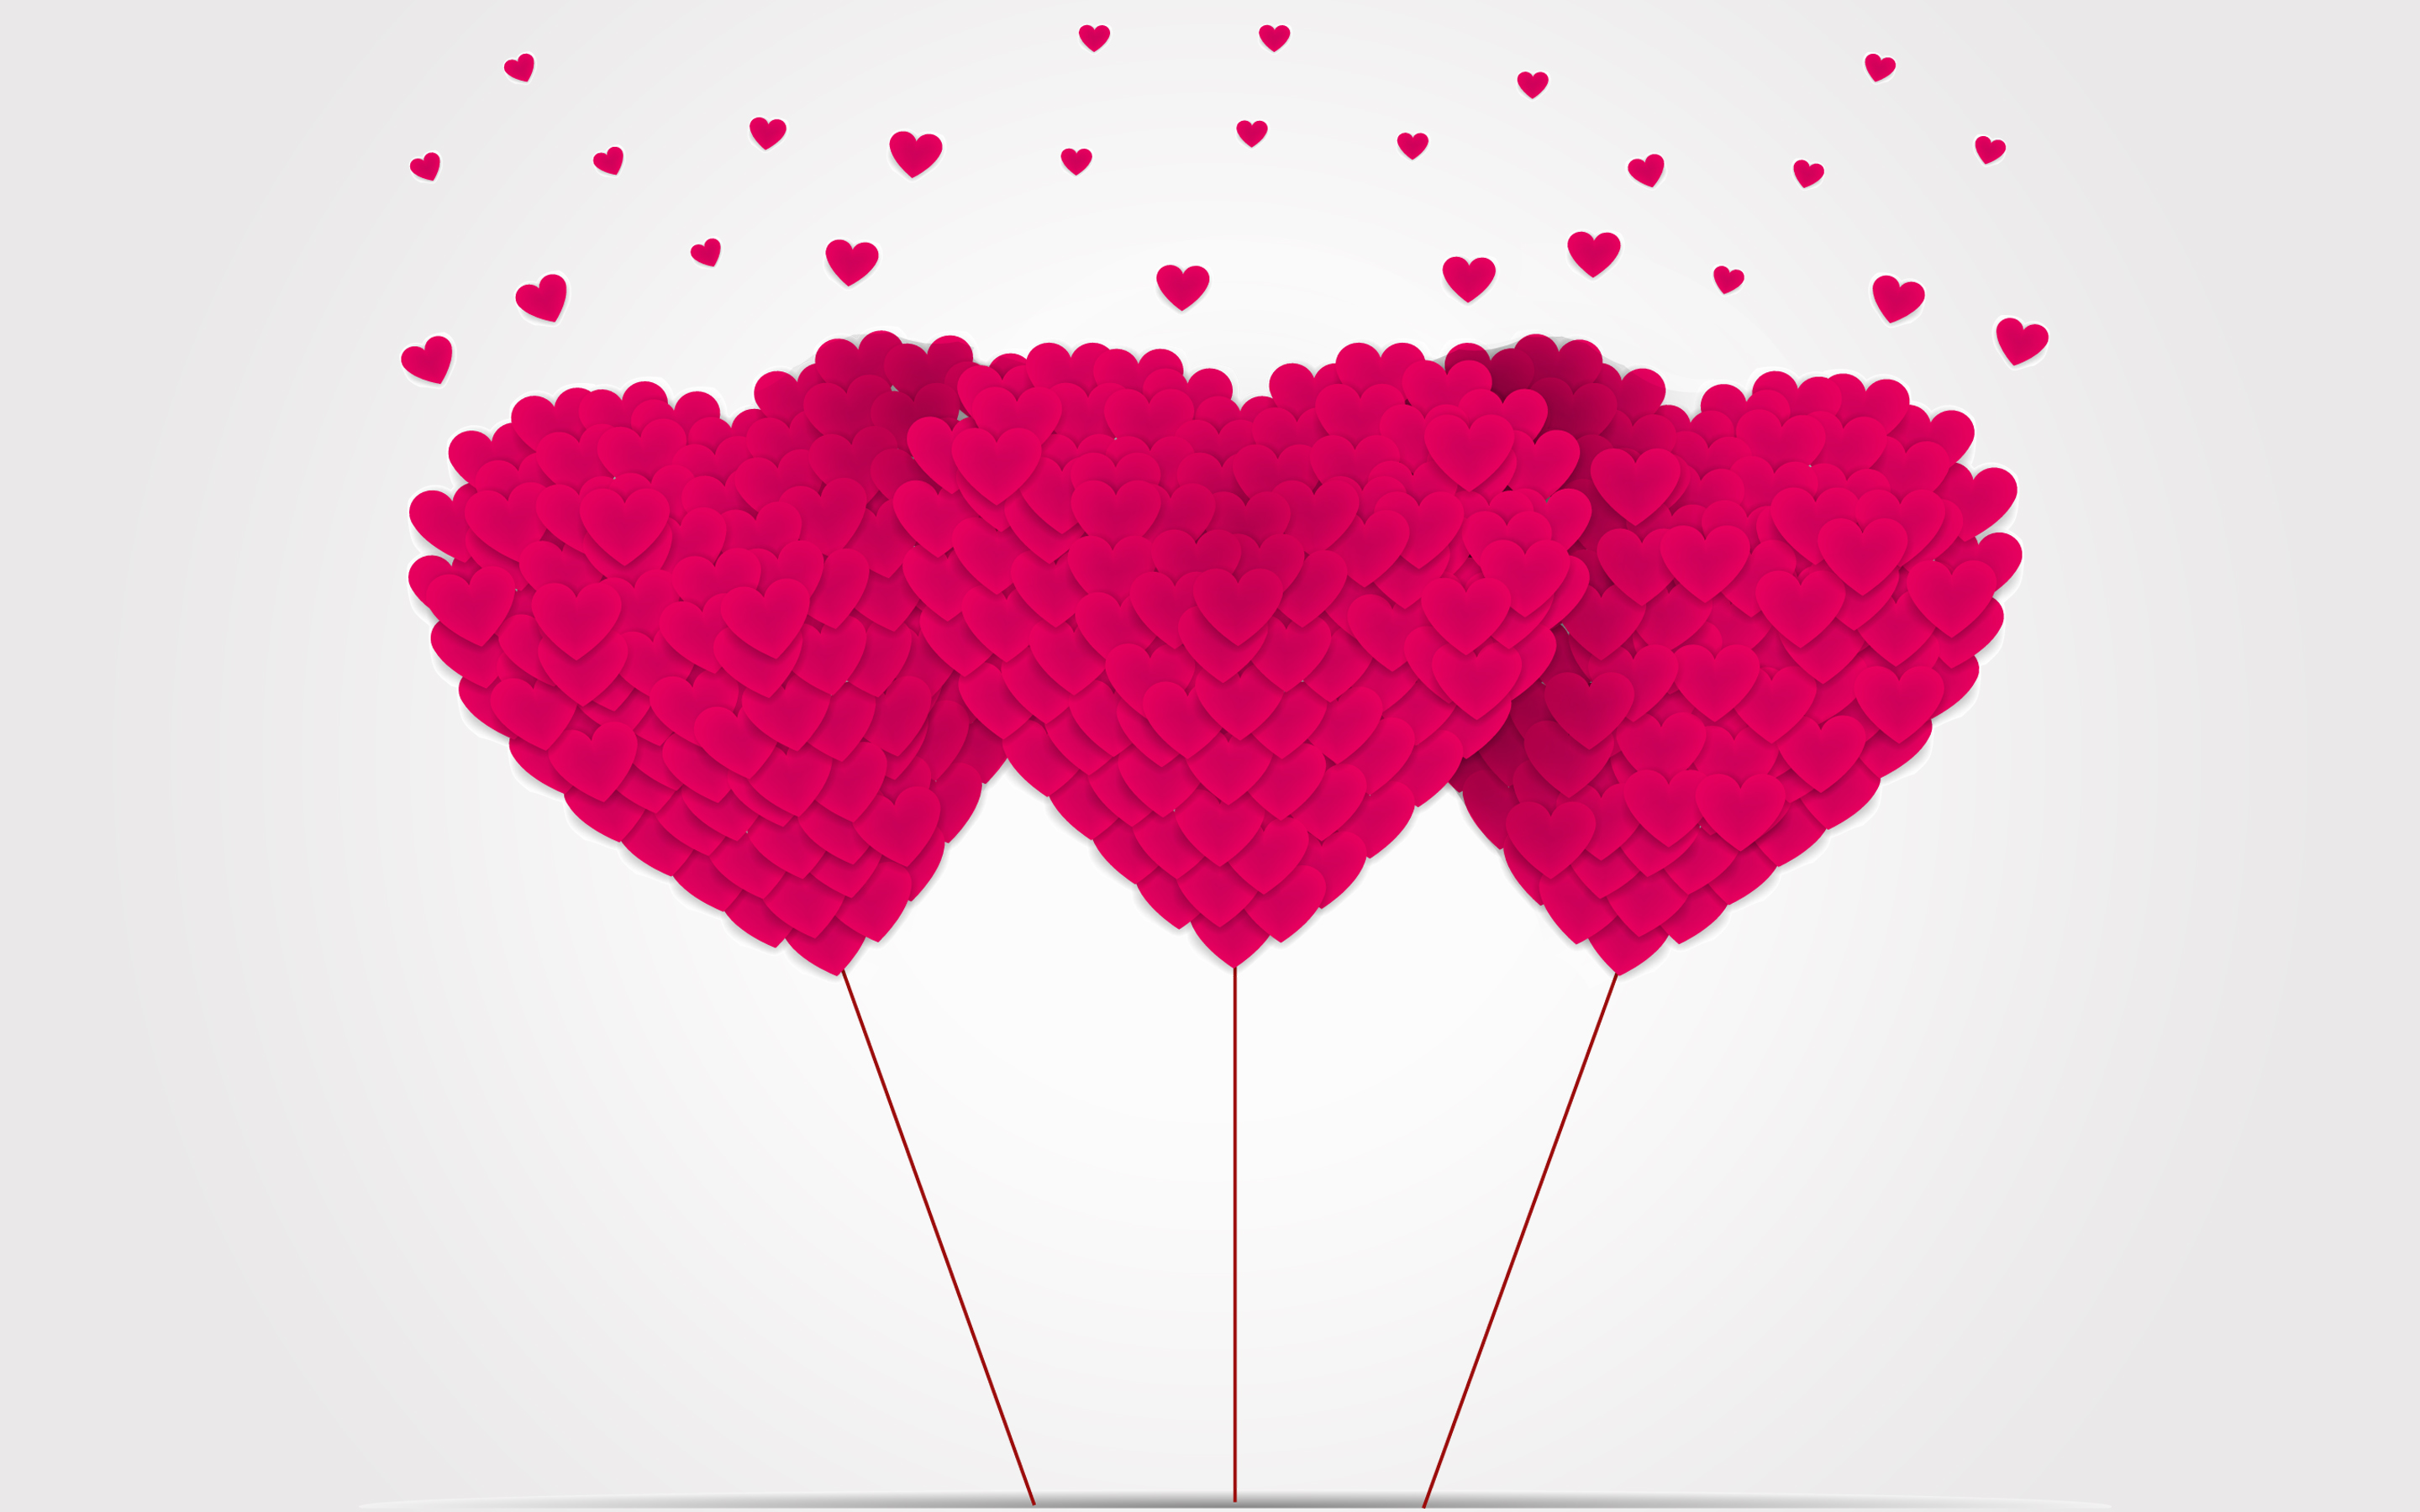 cute Love Wallpaper Tumblr : cute Hearts Wallpaper - WallpaperSafari